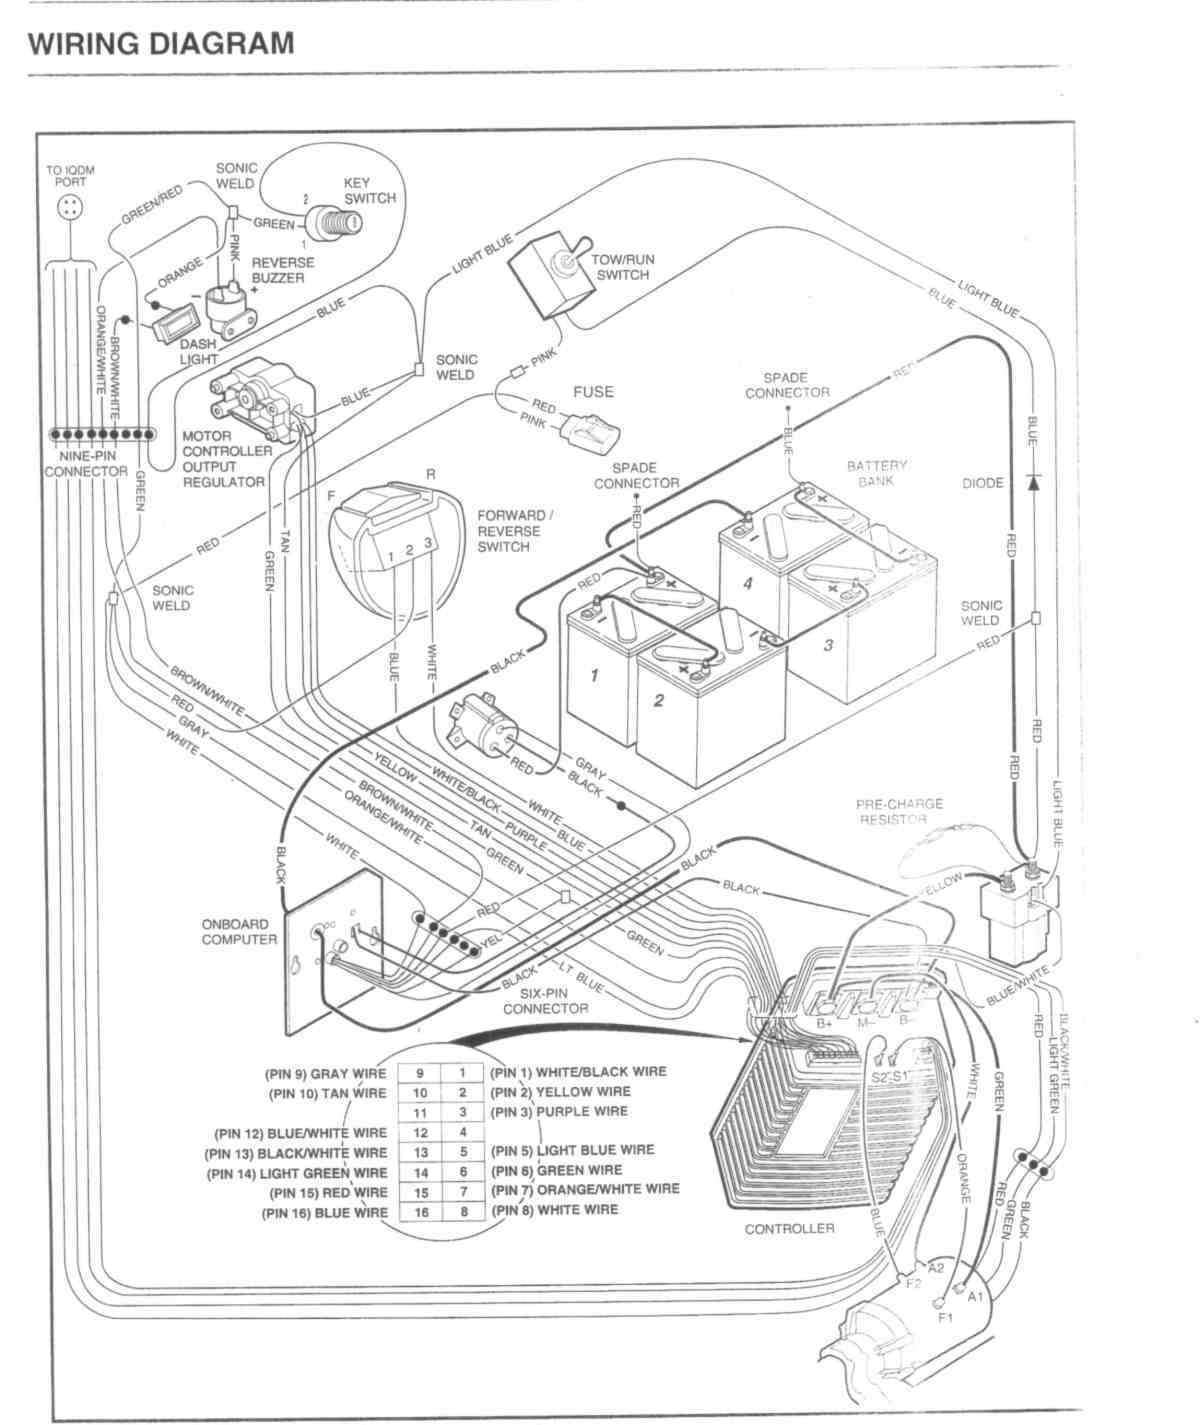 94 Club Car Gas Wiring Diagram : Club car wiring diagram